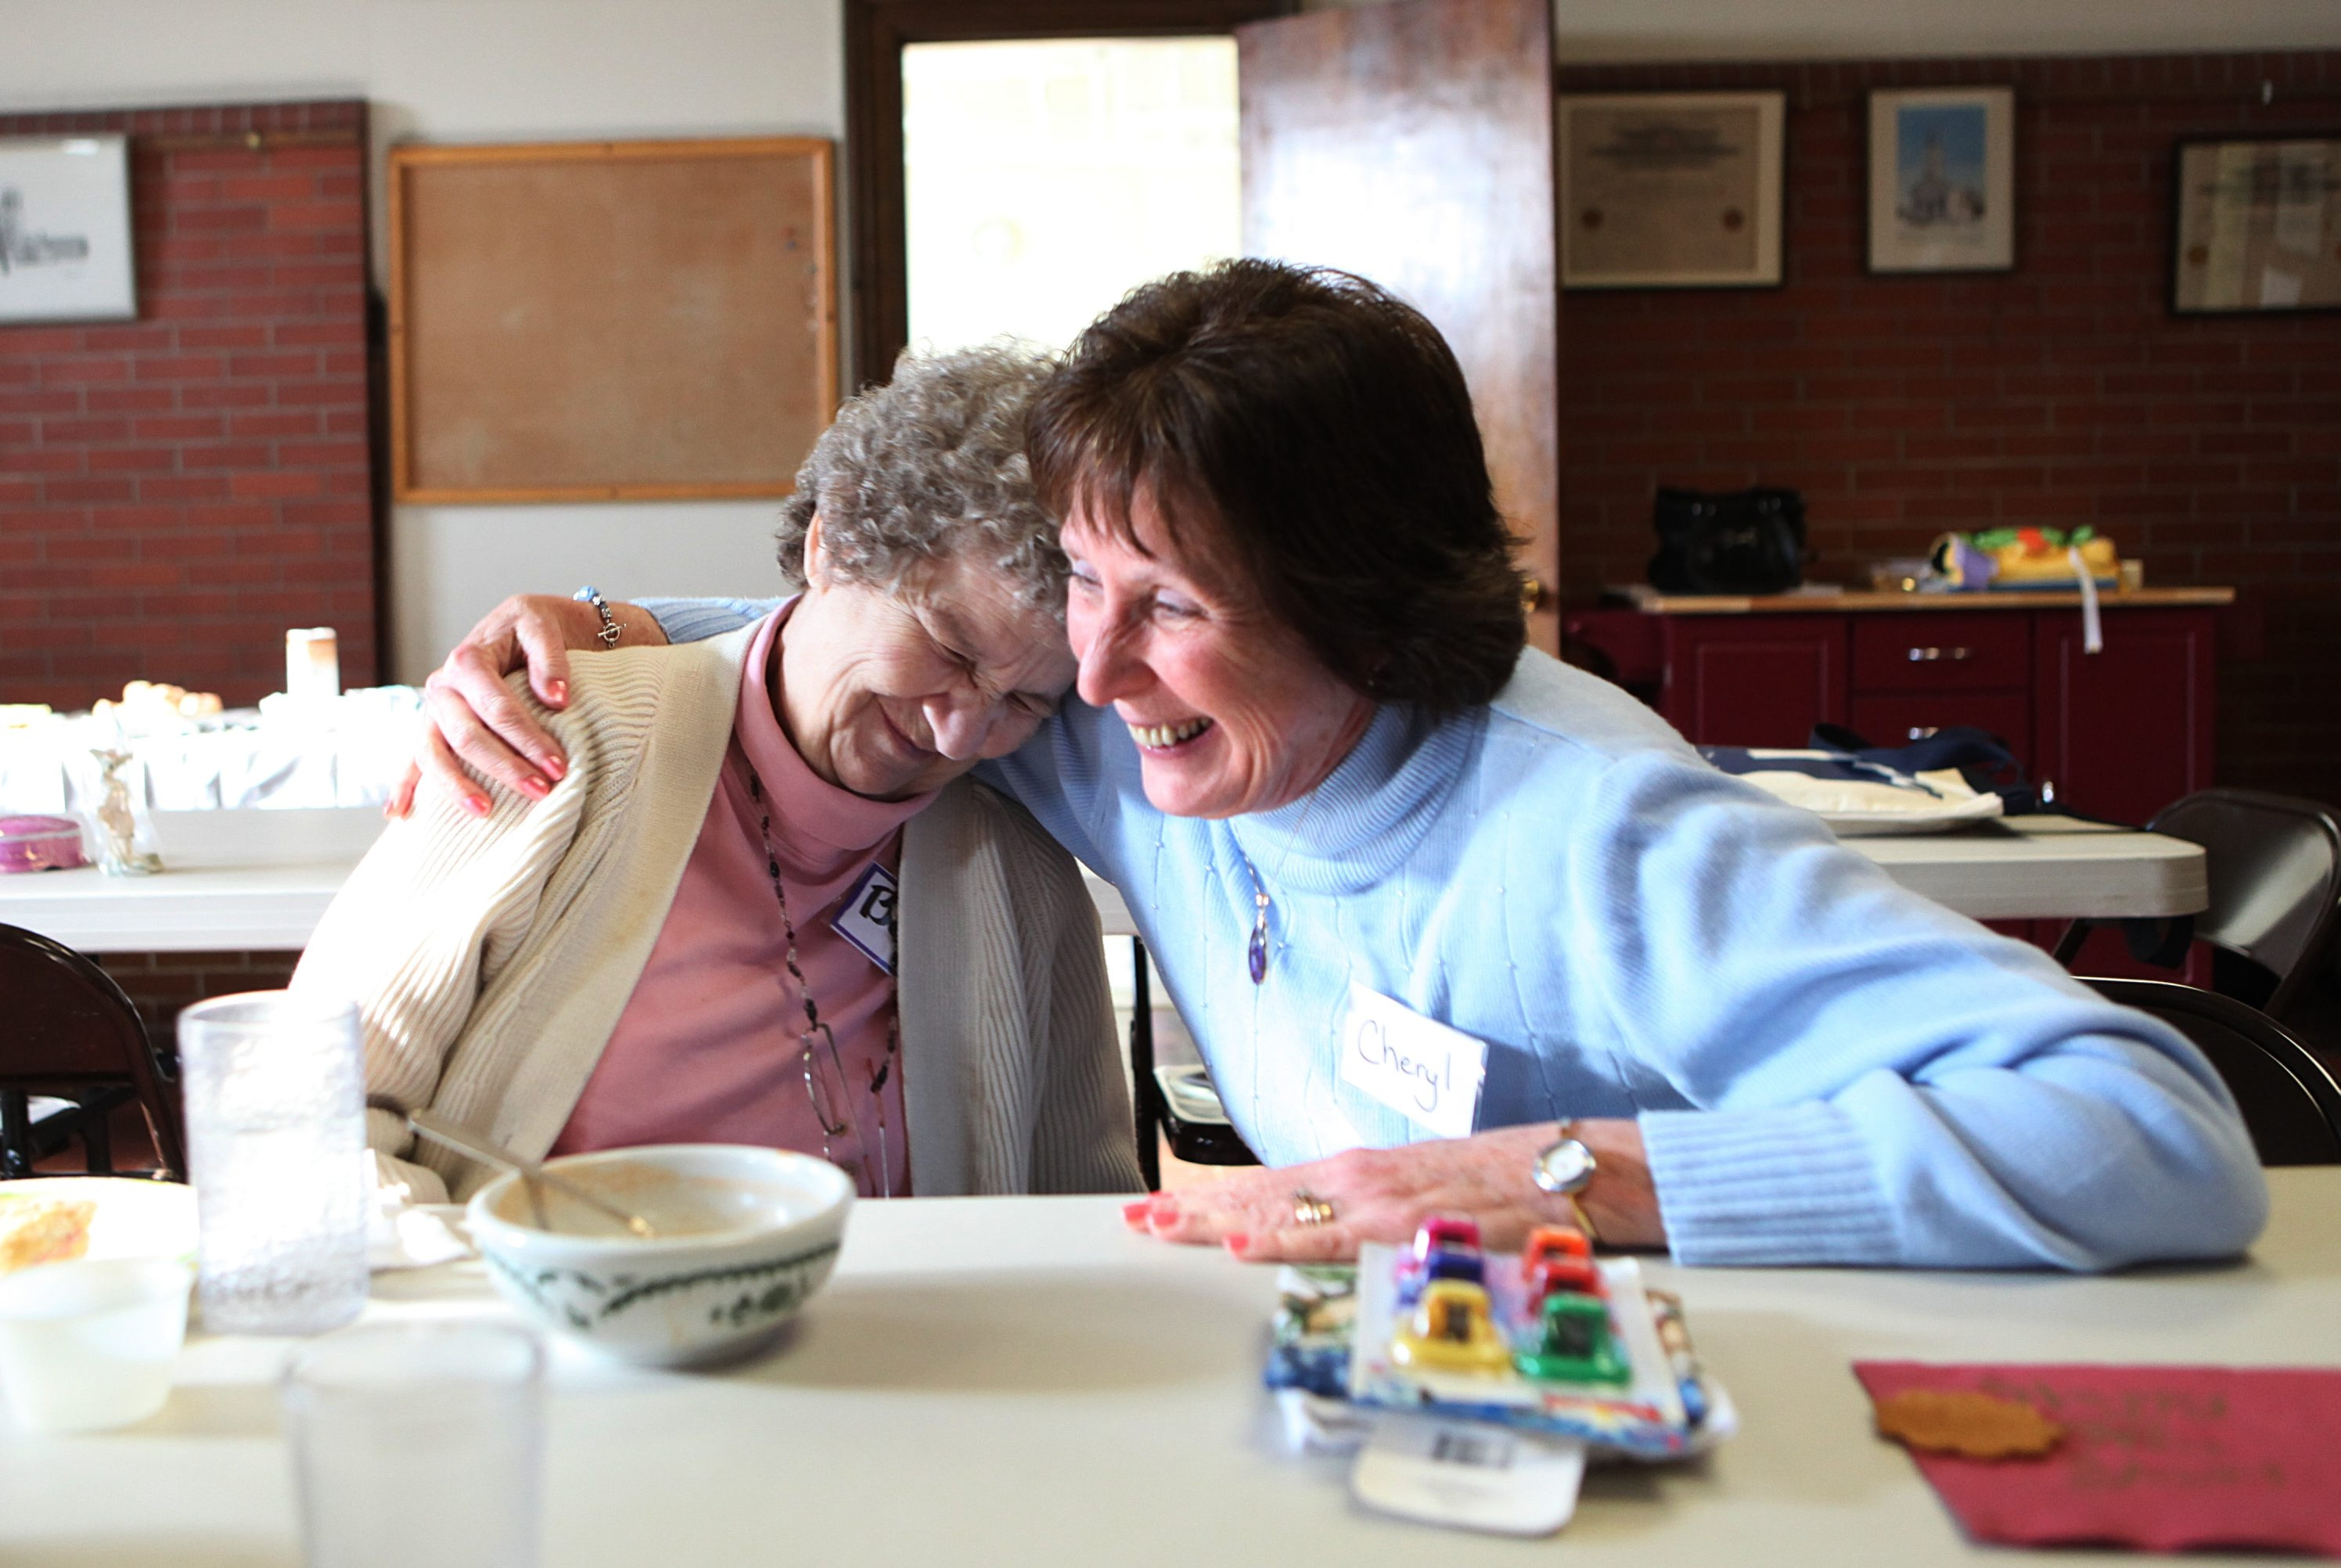 The Hamburg United Methodist Church runs a monthly respite program for caregivers of loved ones with dementia. es for four hours.   Guest Bert, left, gets a hug from volunteer Cheryl Bell as they joke around together.